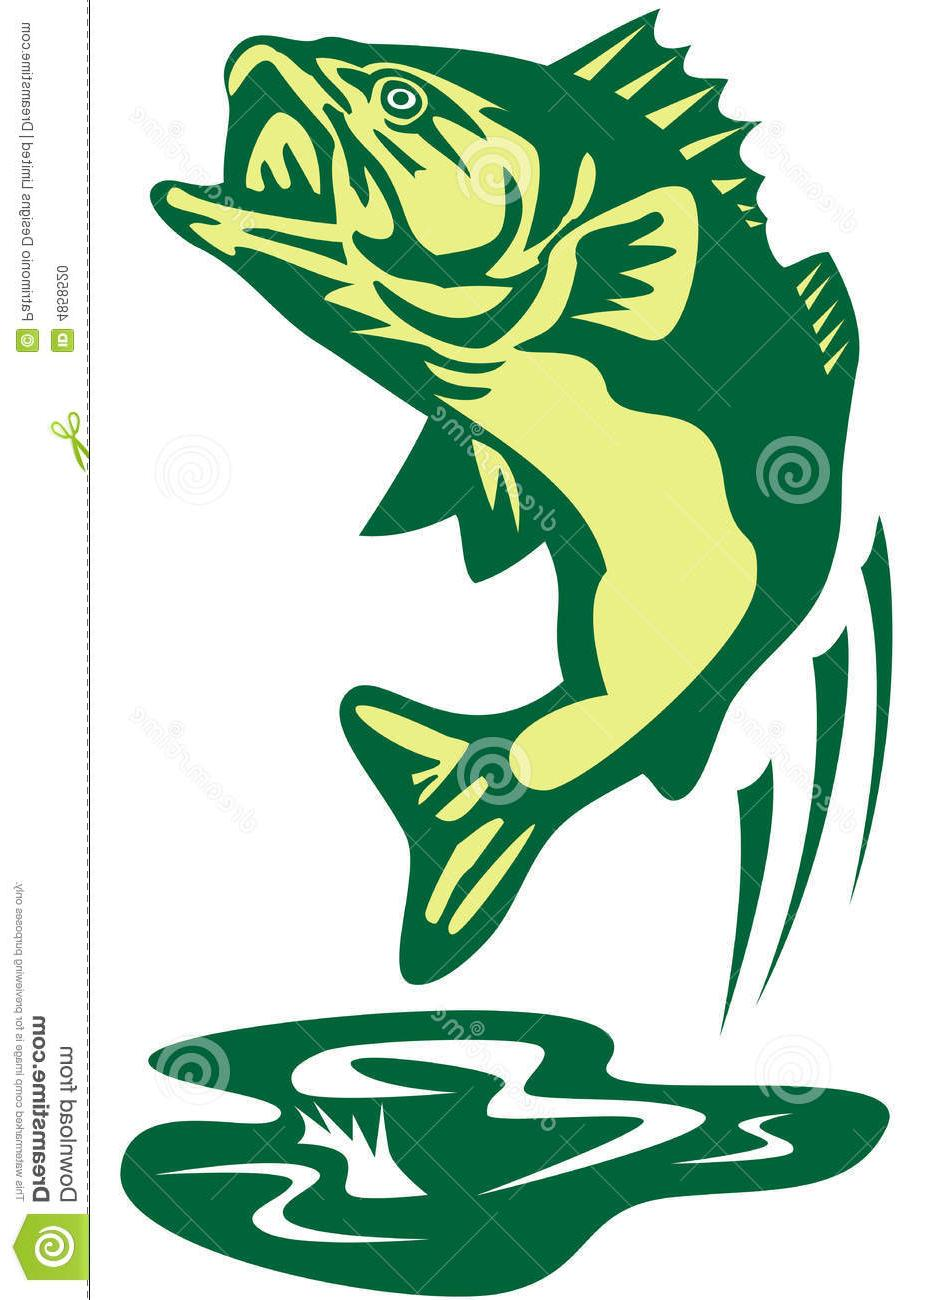 943x1300 Top 10 Bass Fish Clip Art Jumping File Free